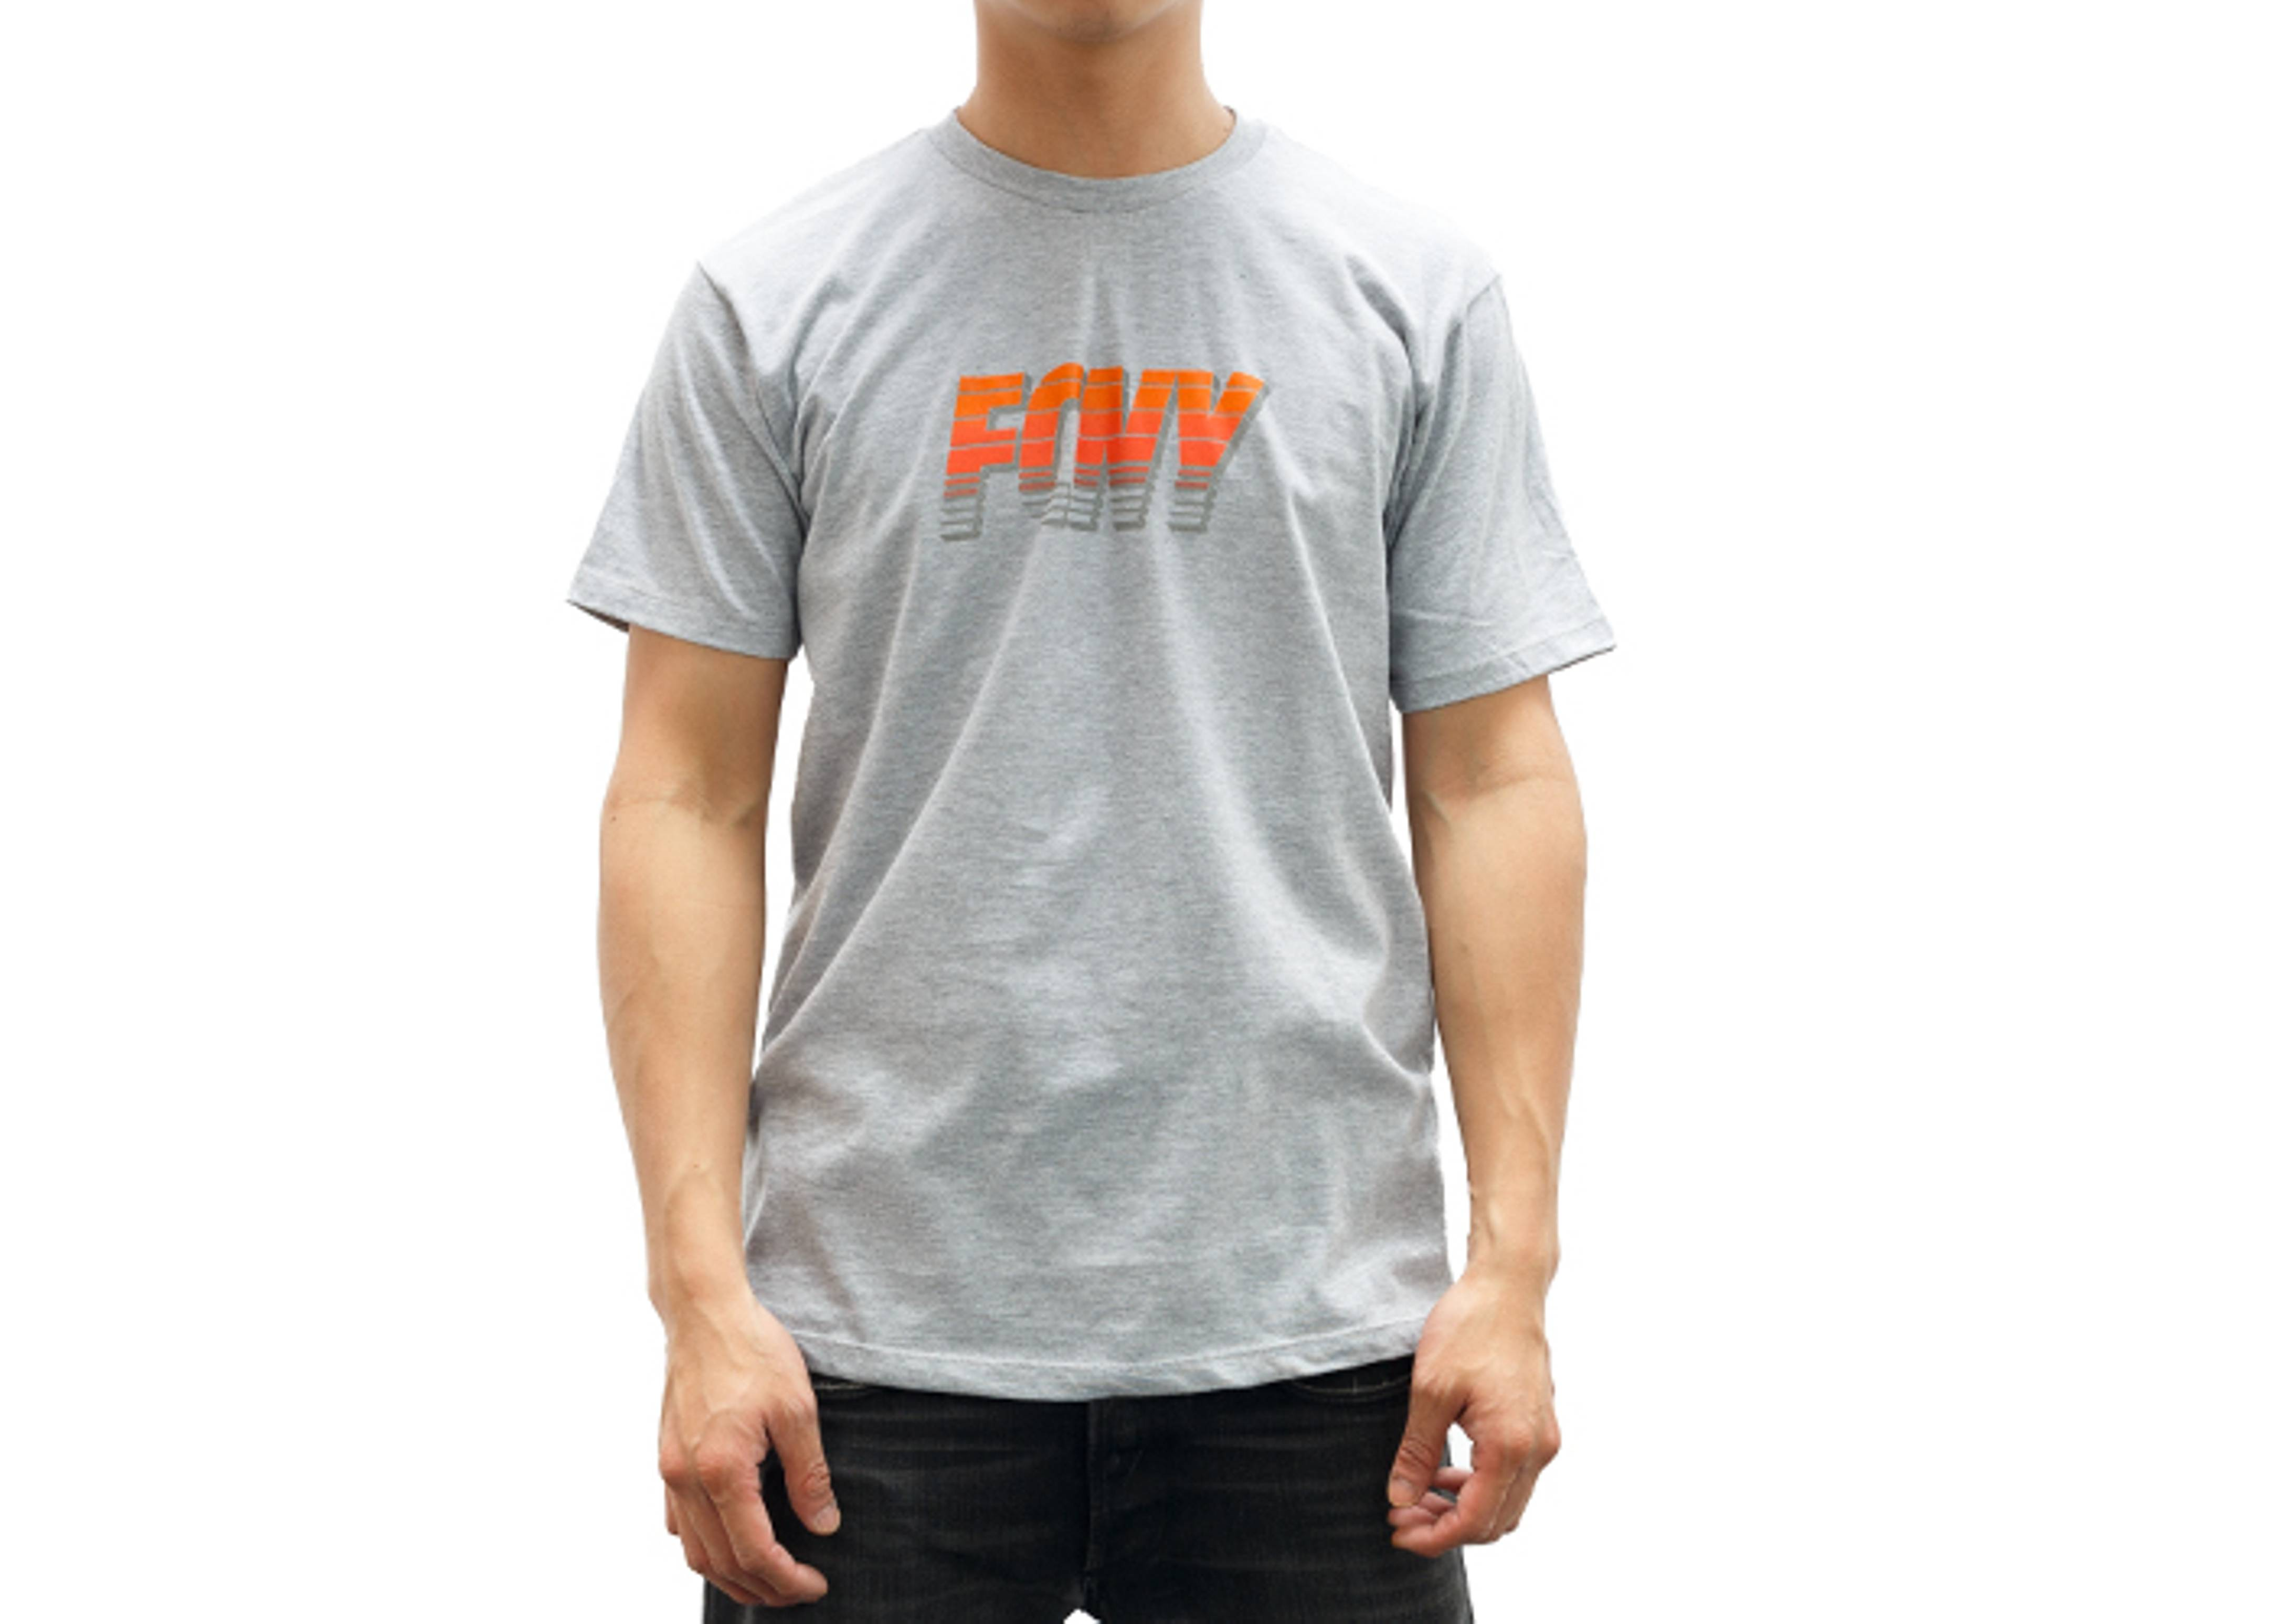 fcny 95s t-shirt